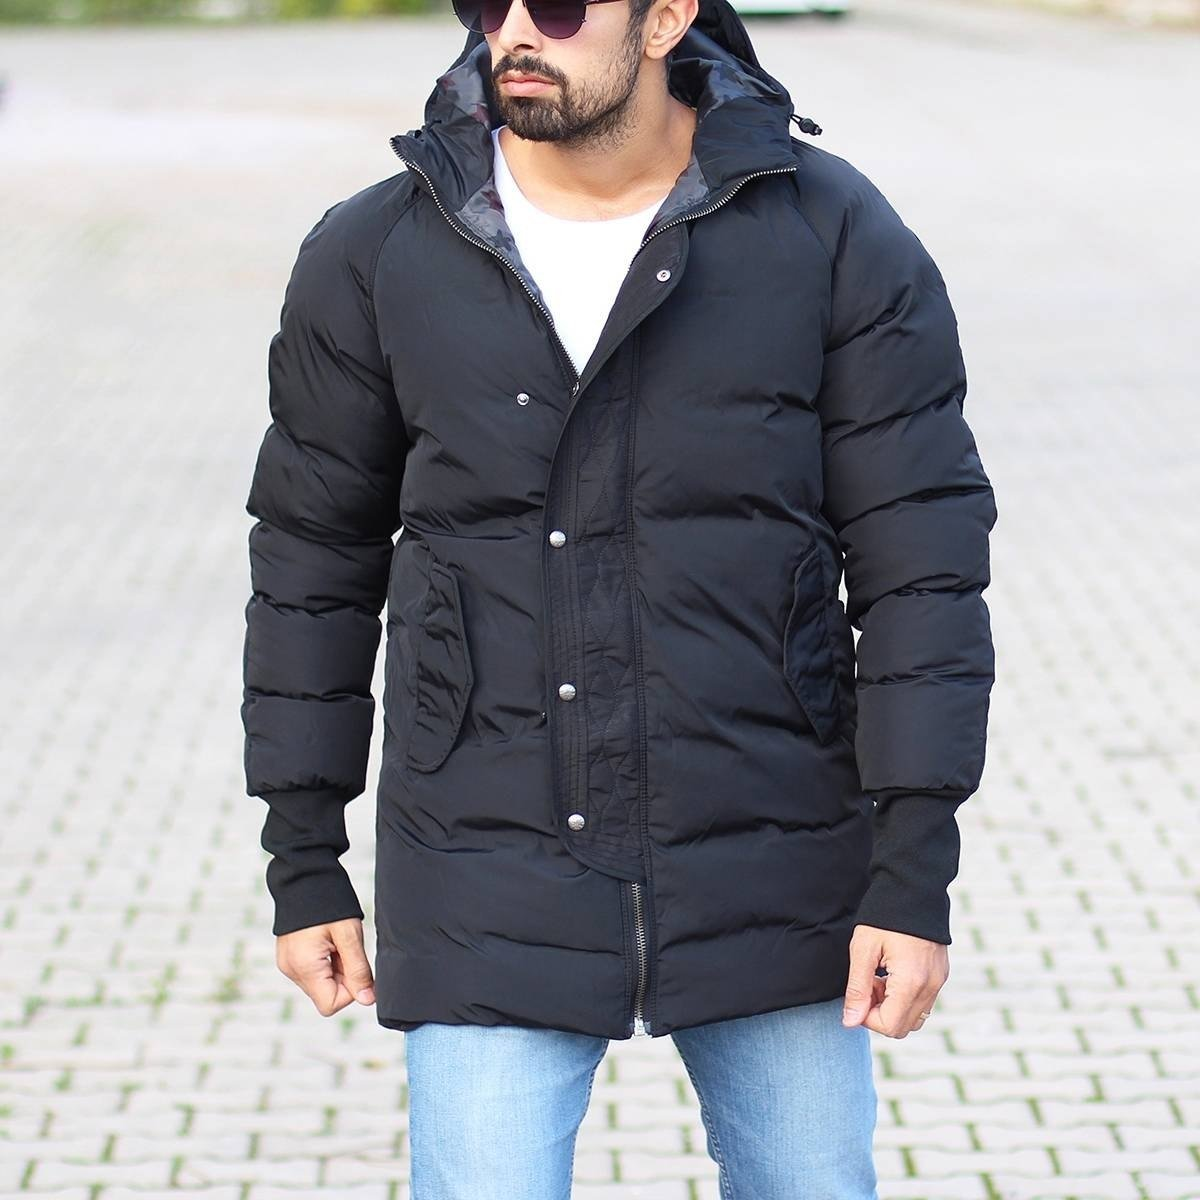 Men's Hooded Puffer Winter Coat In Black Mv Premium Brand - 2